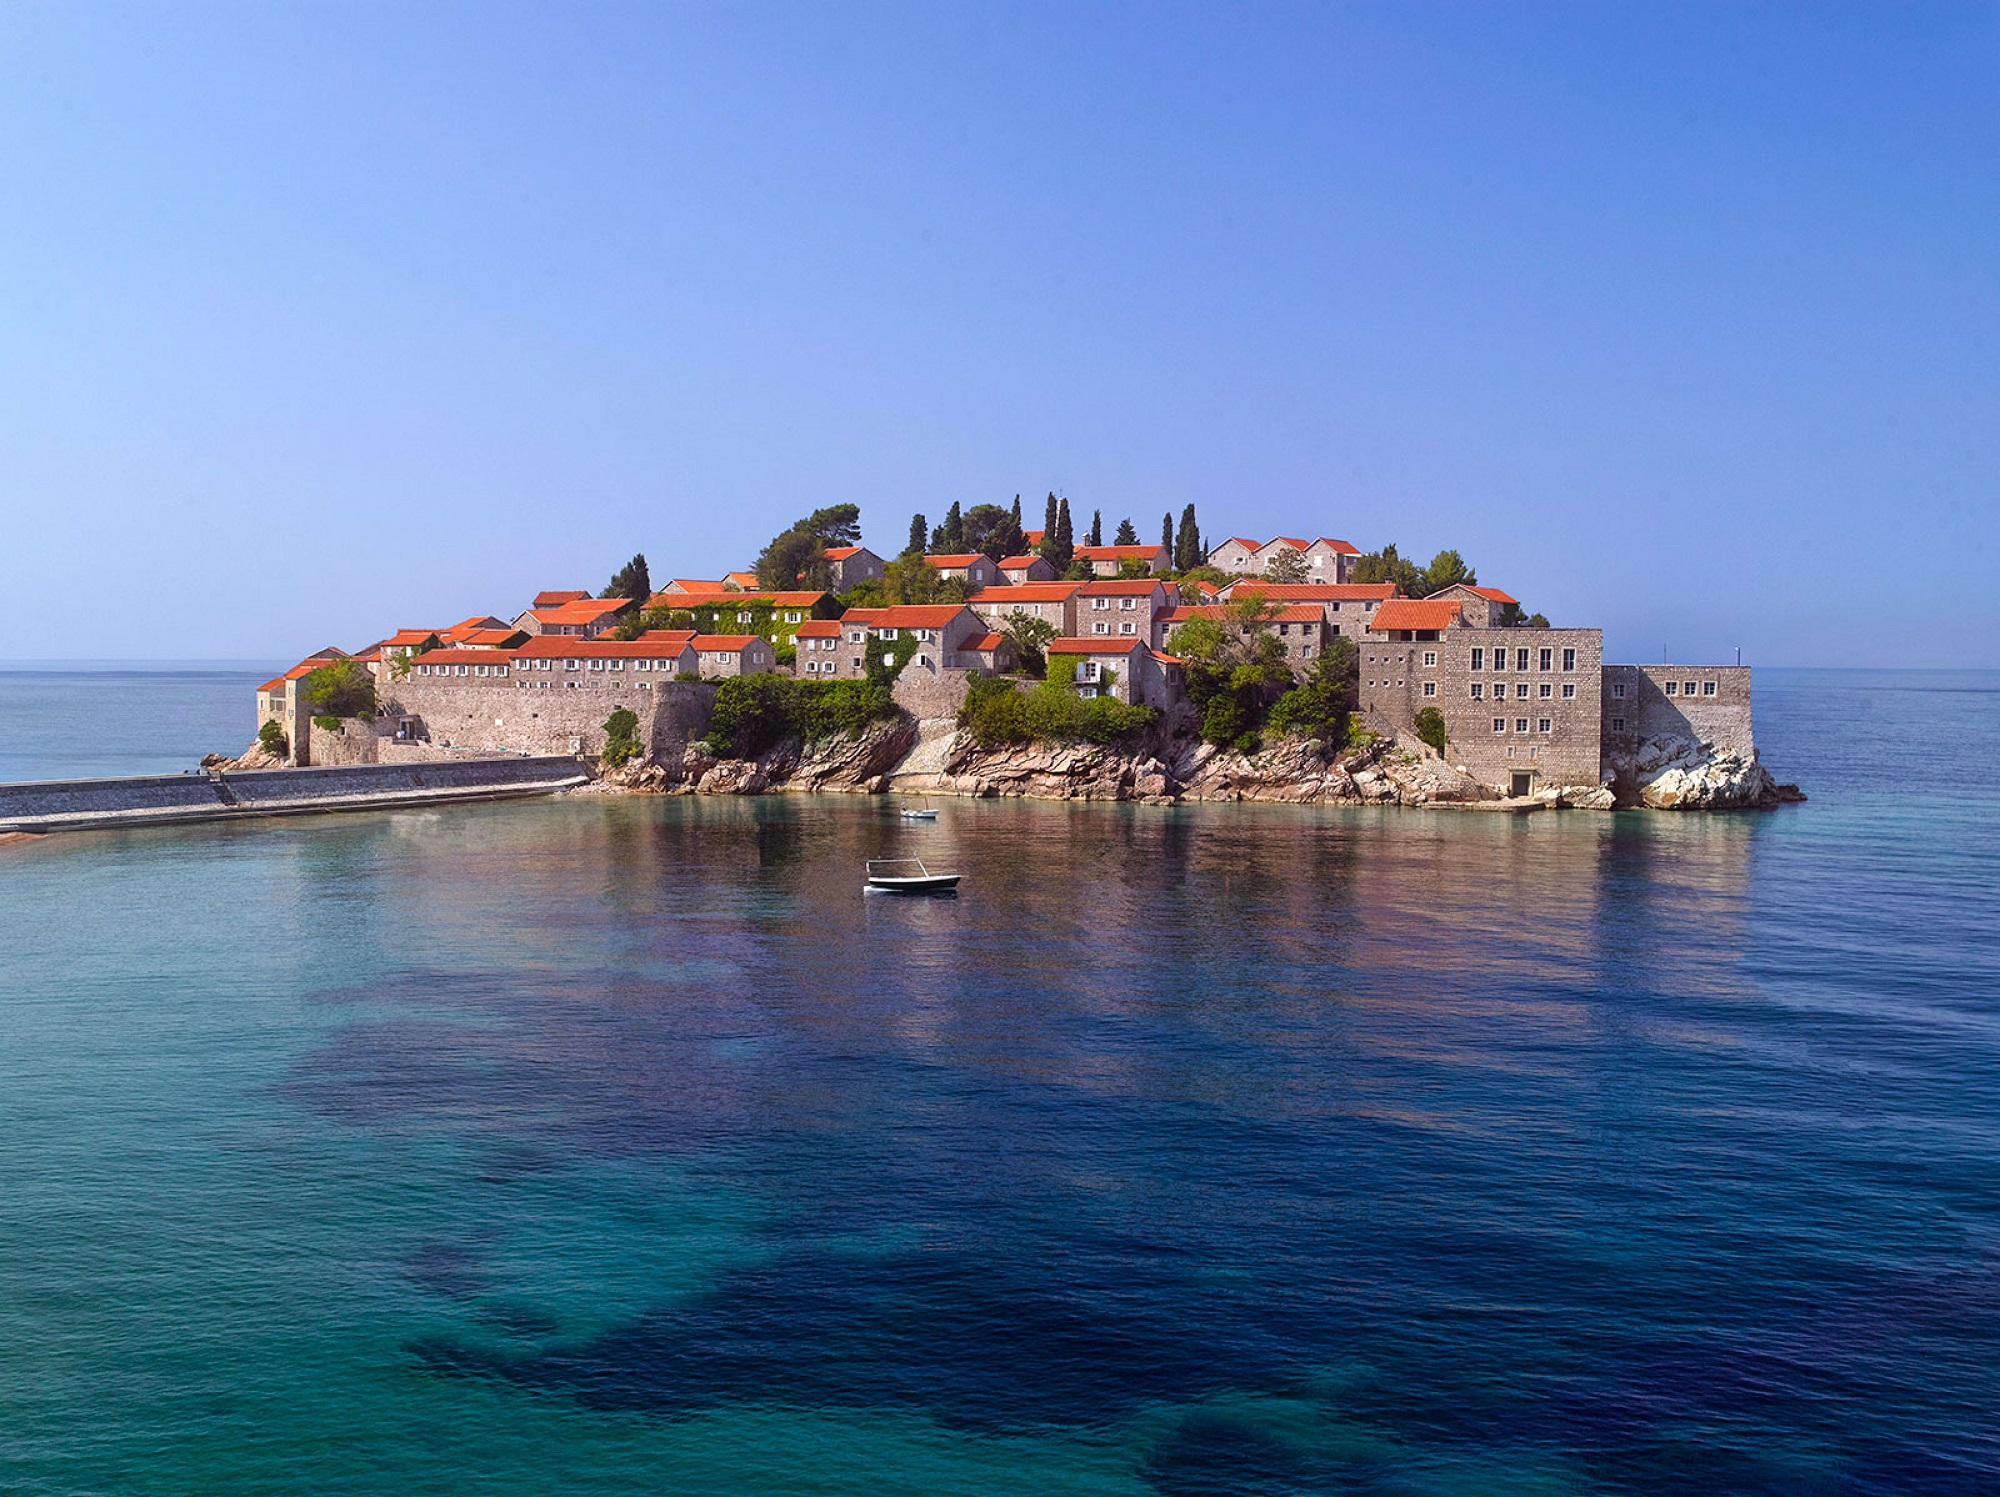 Private island resorts, Aman Sveti Stefan